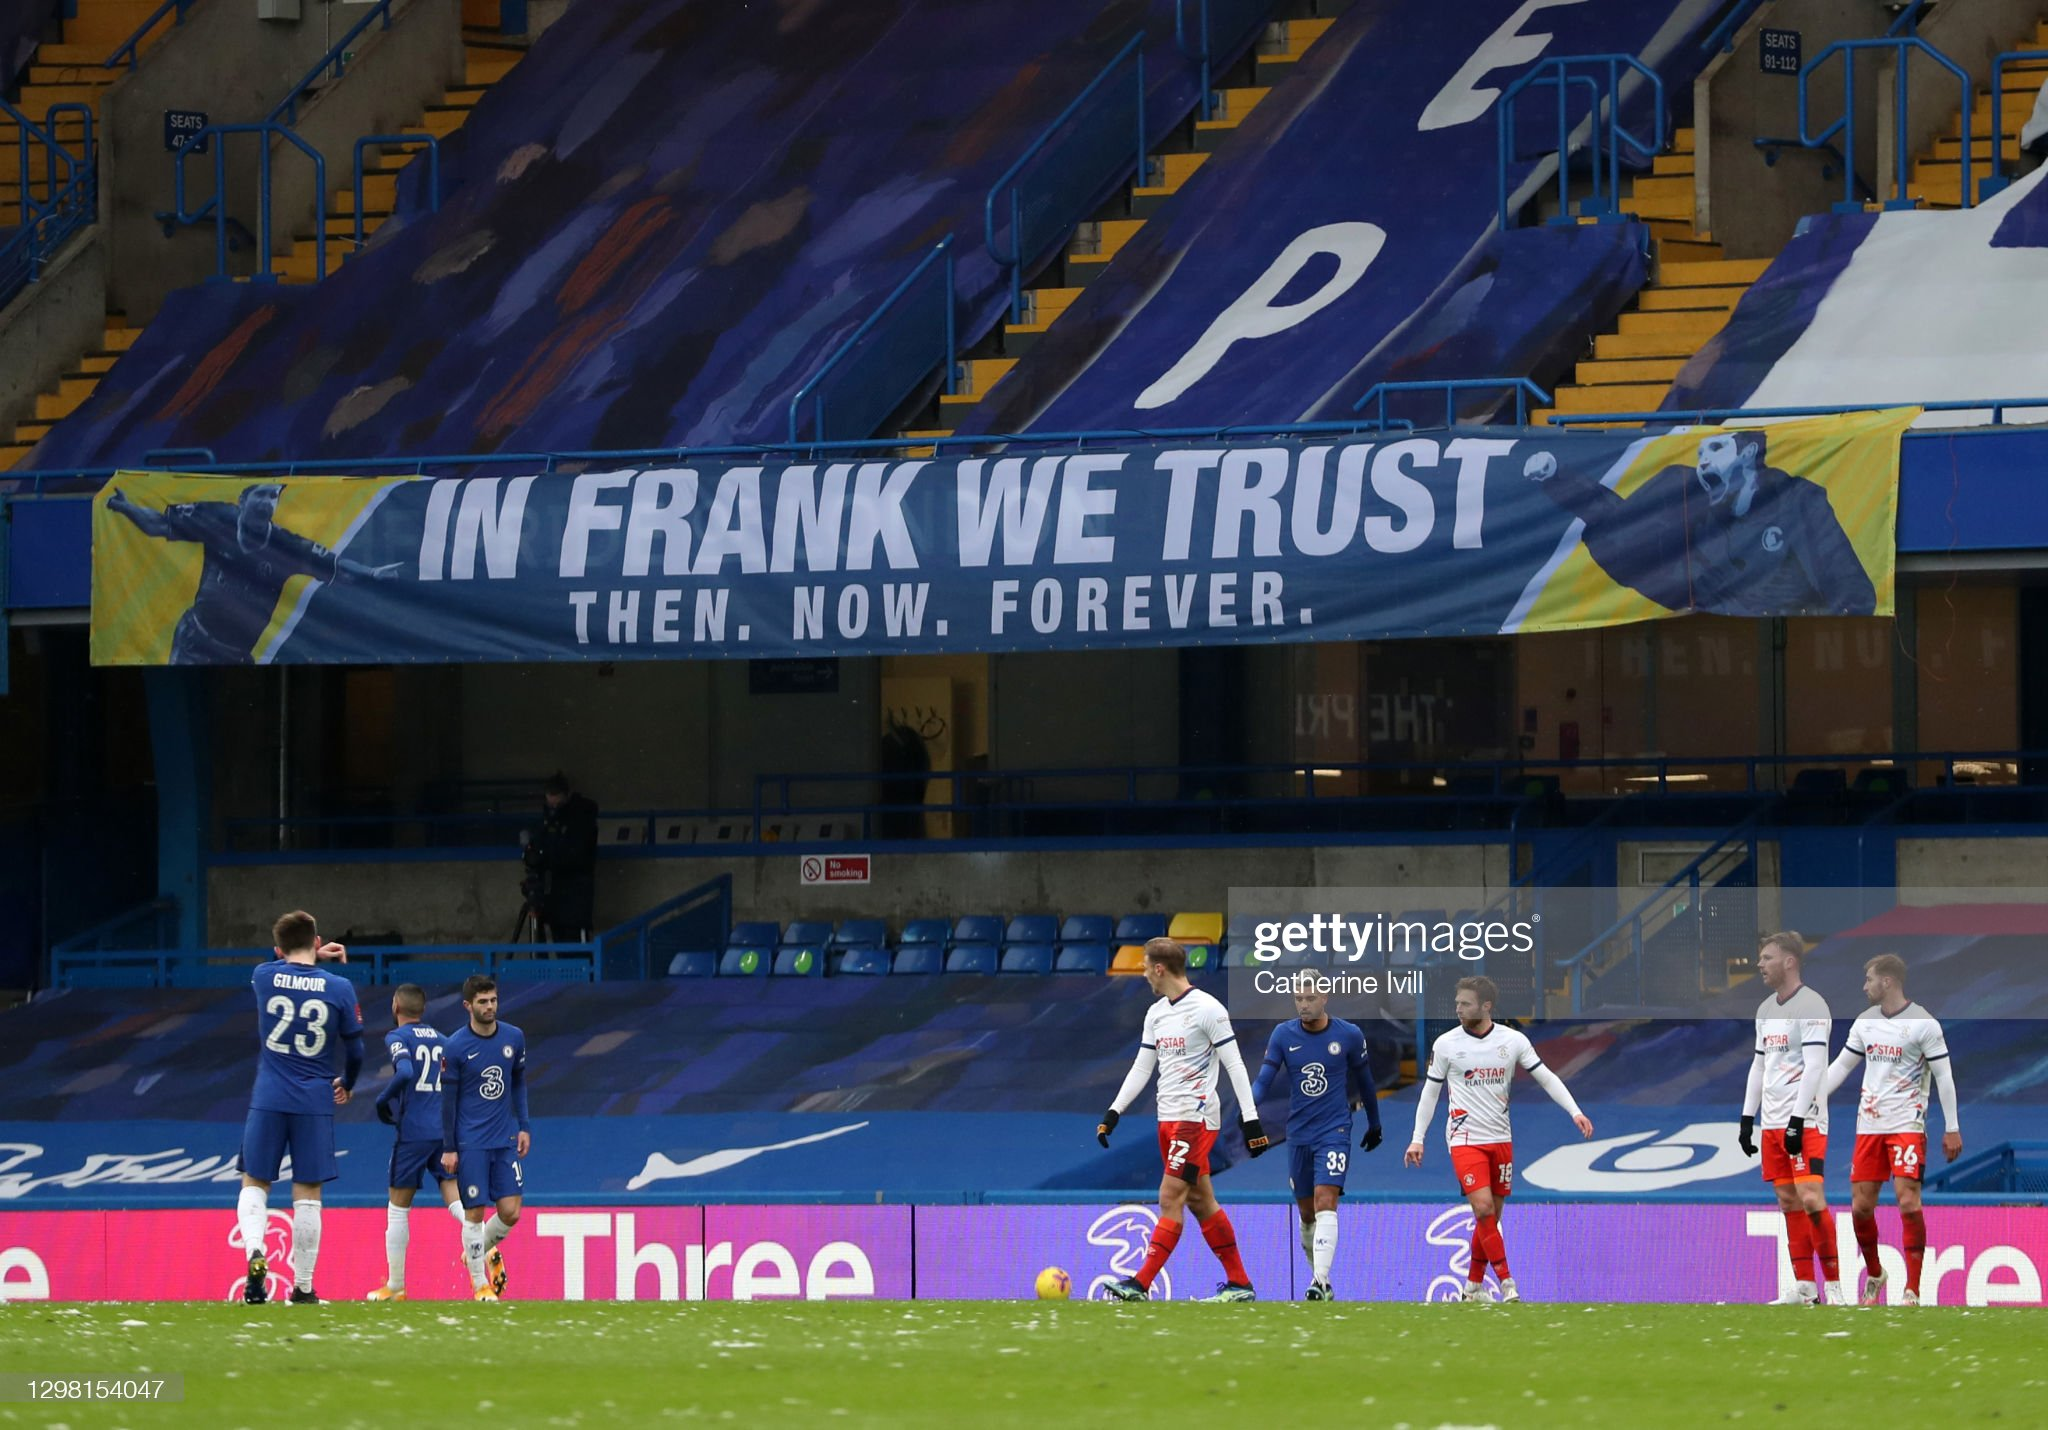 banner-saying-in-frank-we-trust-during-t